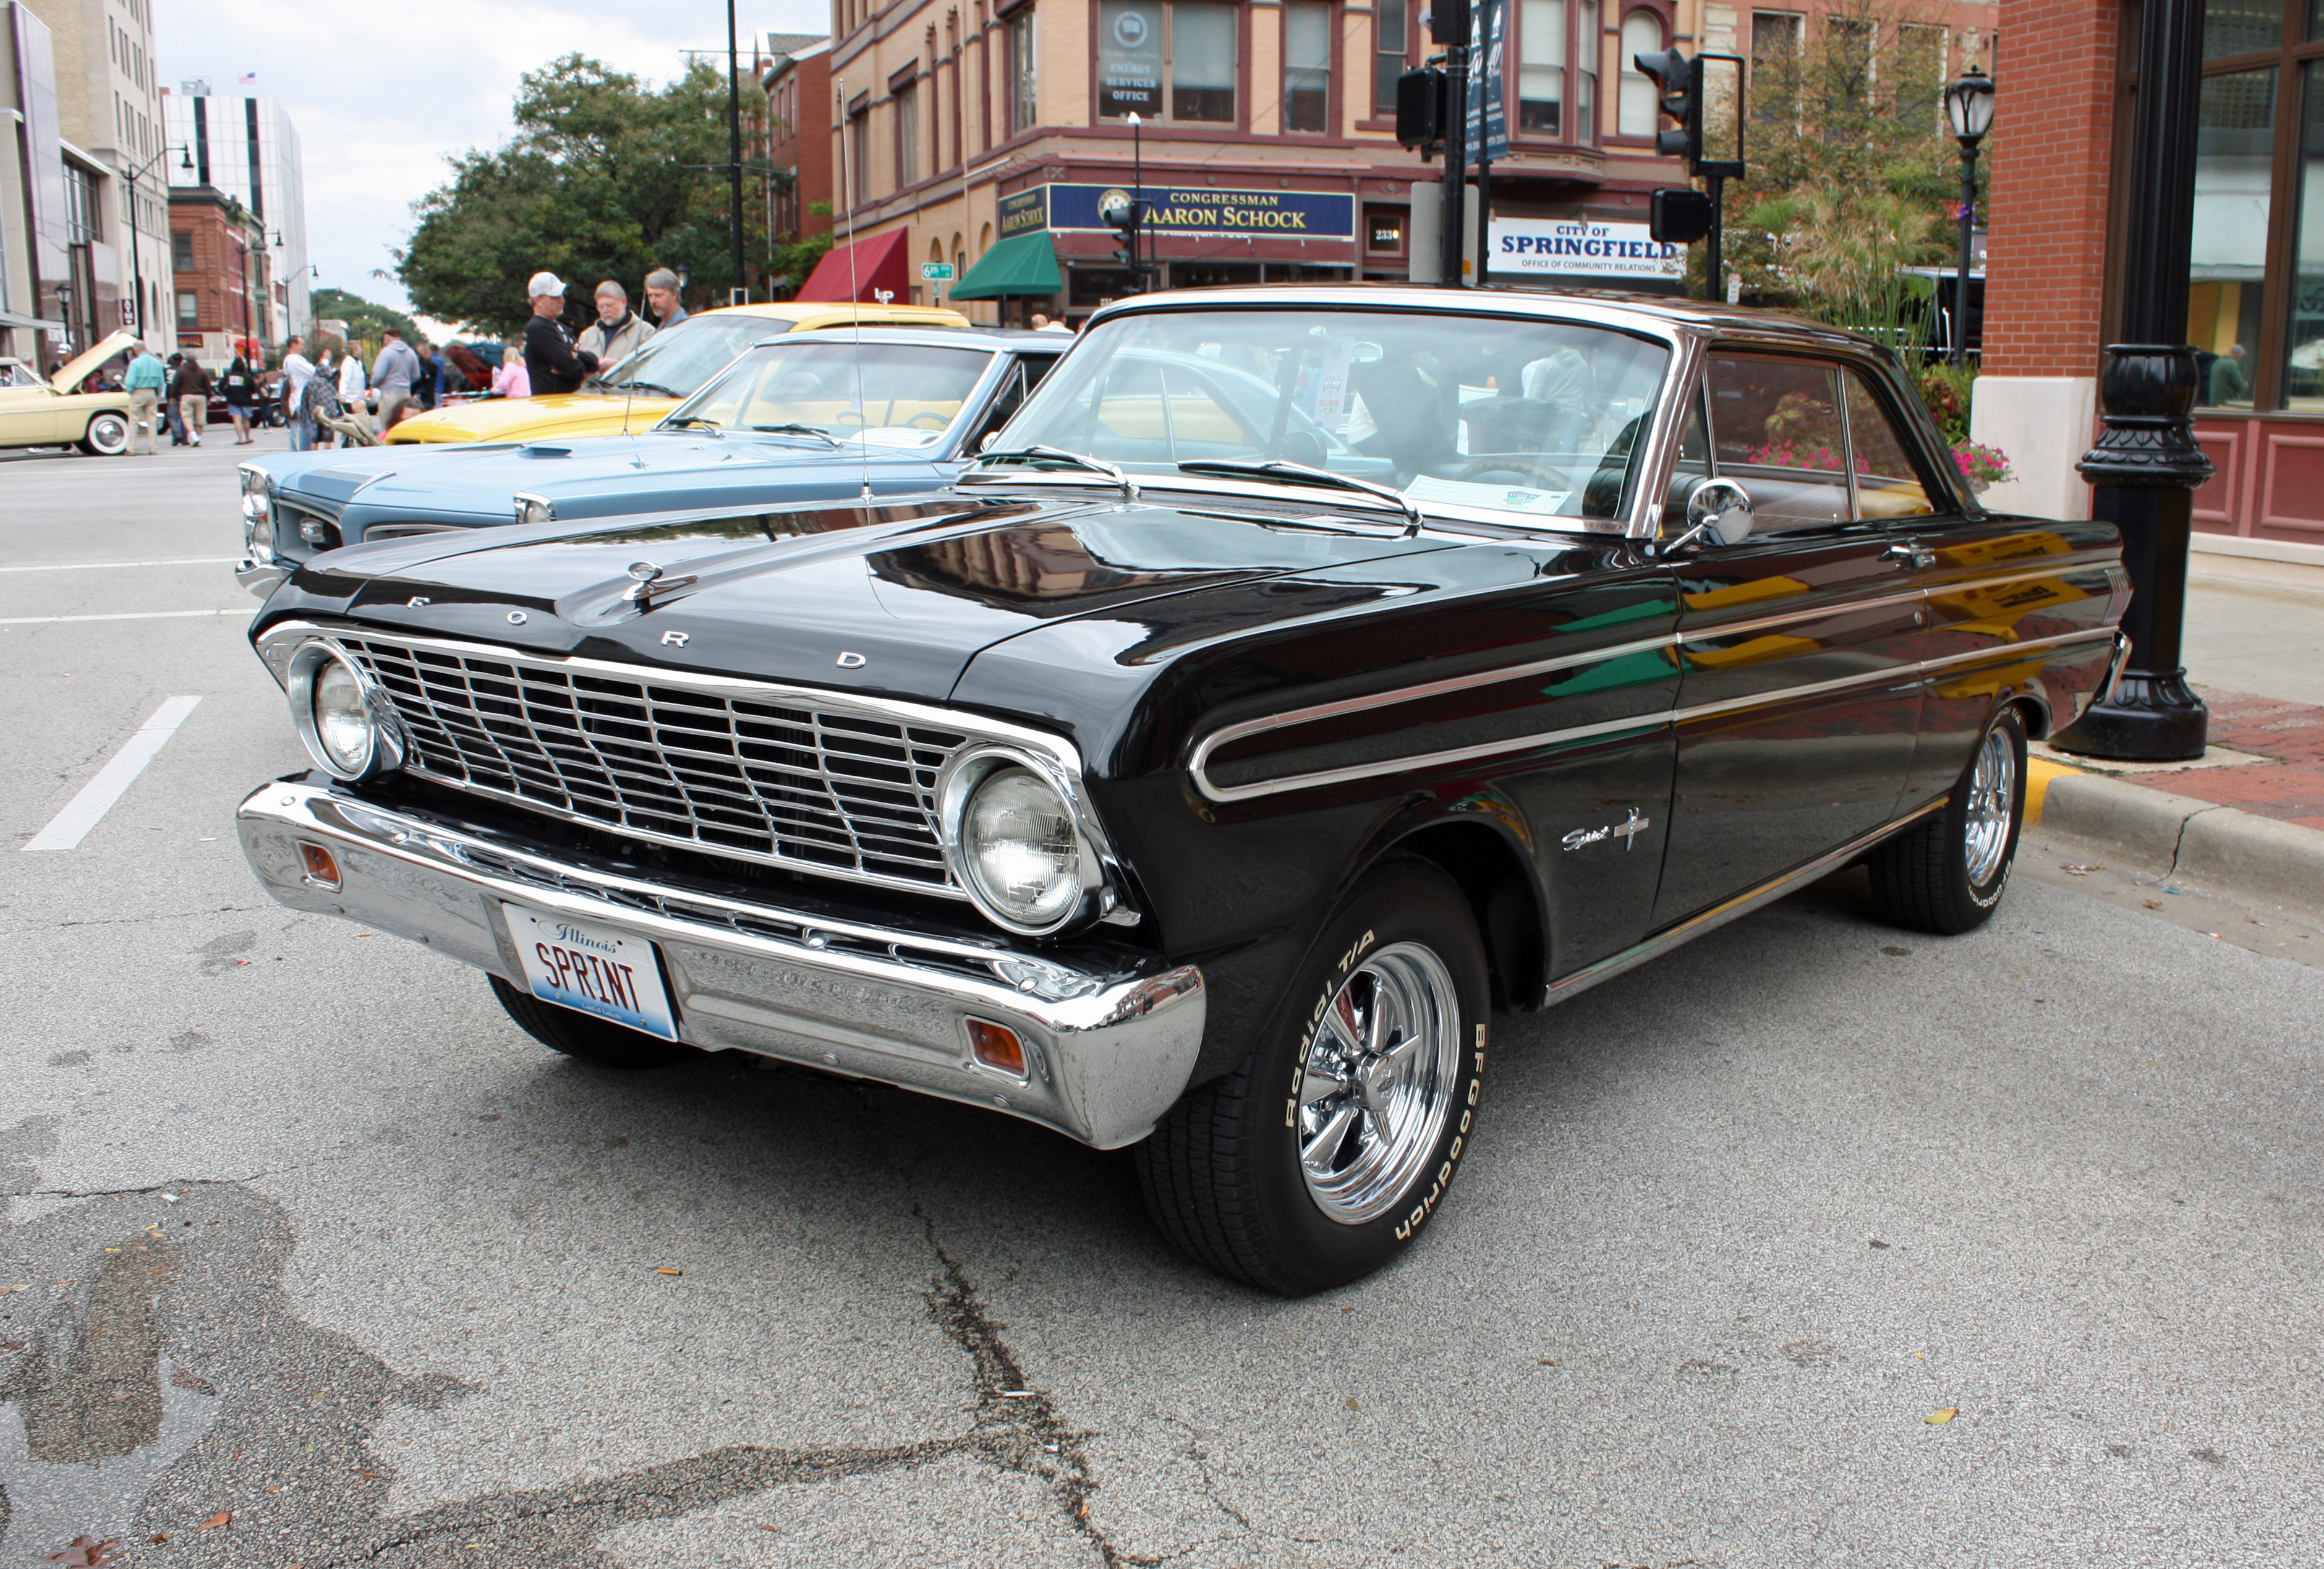 1963 Ford Falcon Sprint For Sale further 1963 Ford Falcon Sprint besides 1965 Ford Falcon moreover 1964 Ford Falcon Sprint 1024 X 770 1964 Ford Falcon Sprint 1280 X 1080 together with Ford Falcon Tail Lights. on 1964 ford falcon sprint